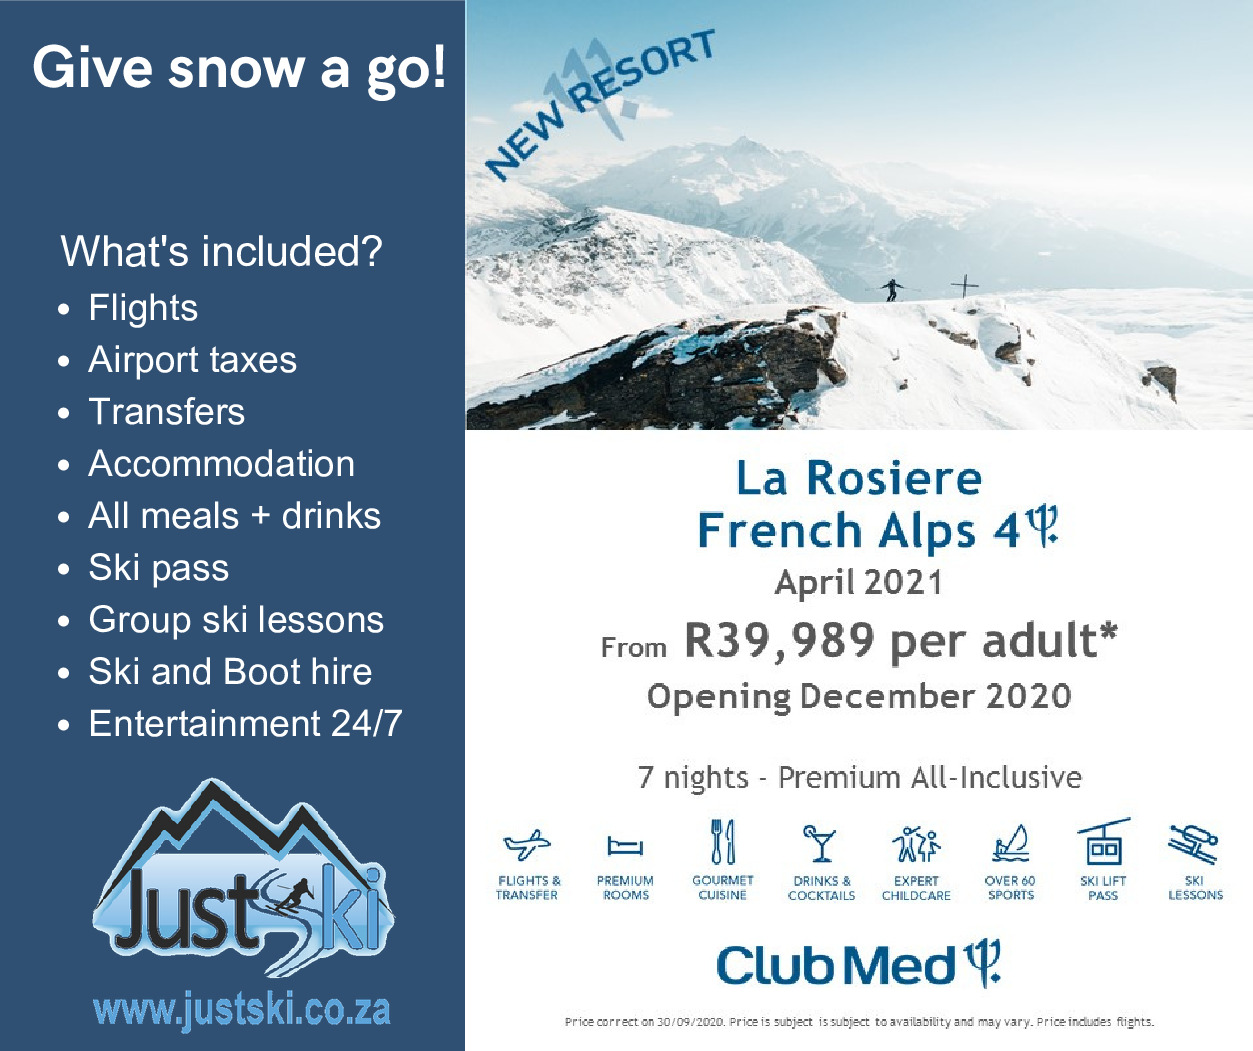 Club Med La Rosiere French Alps – April 2021